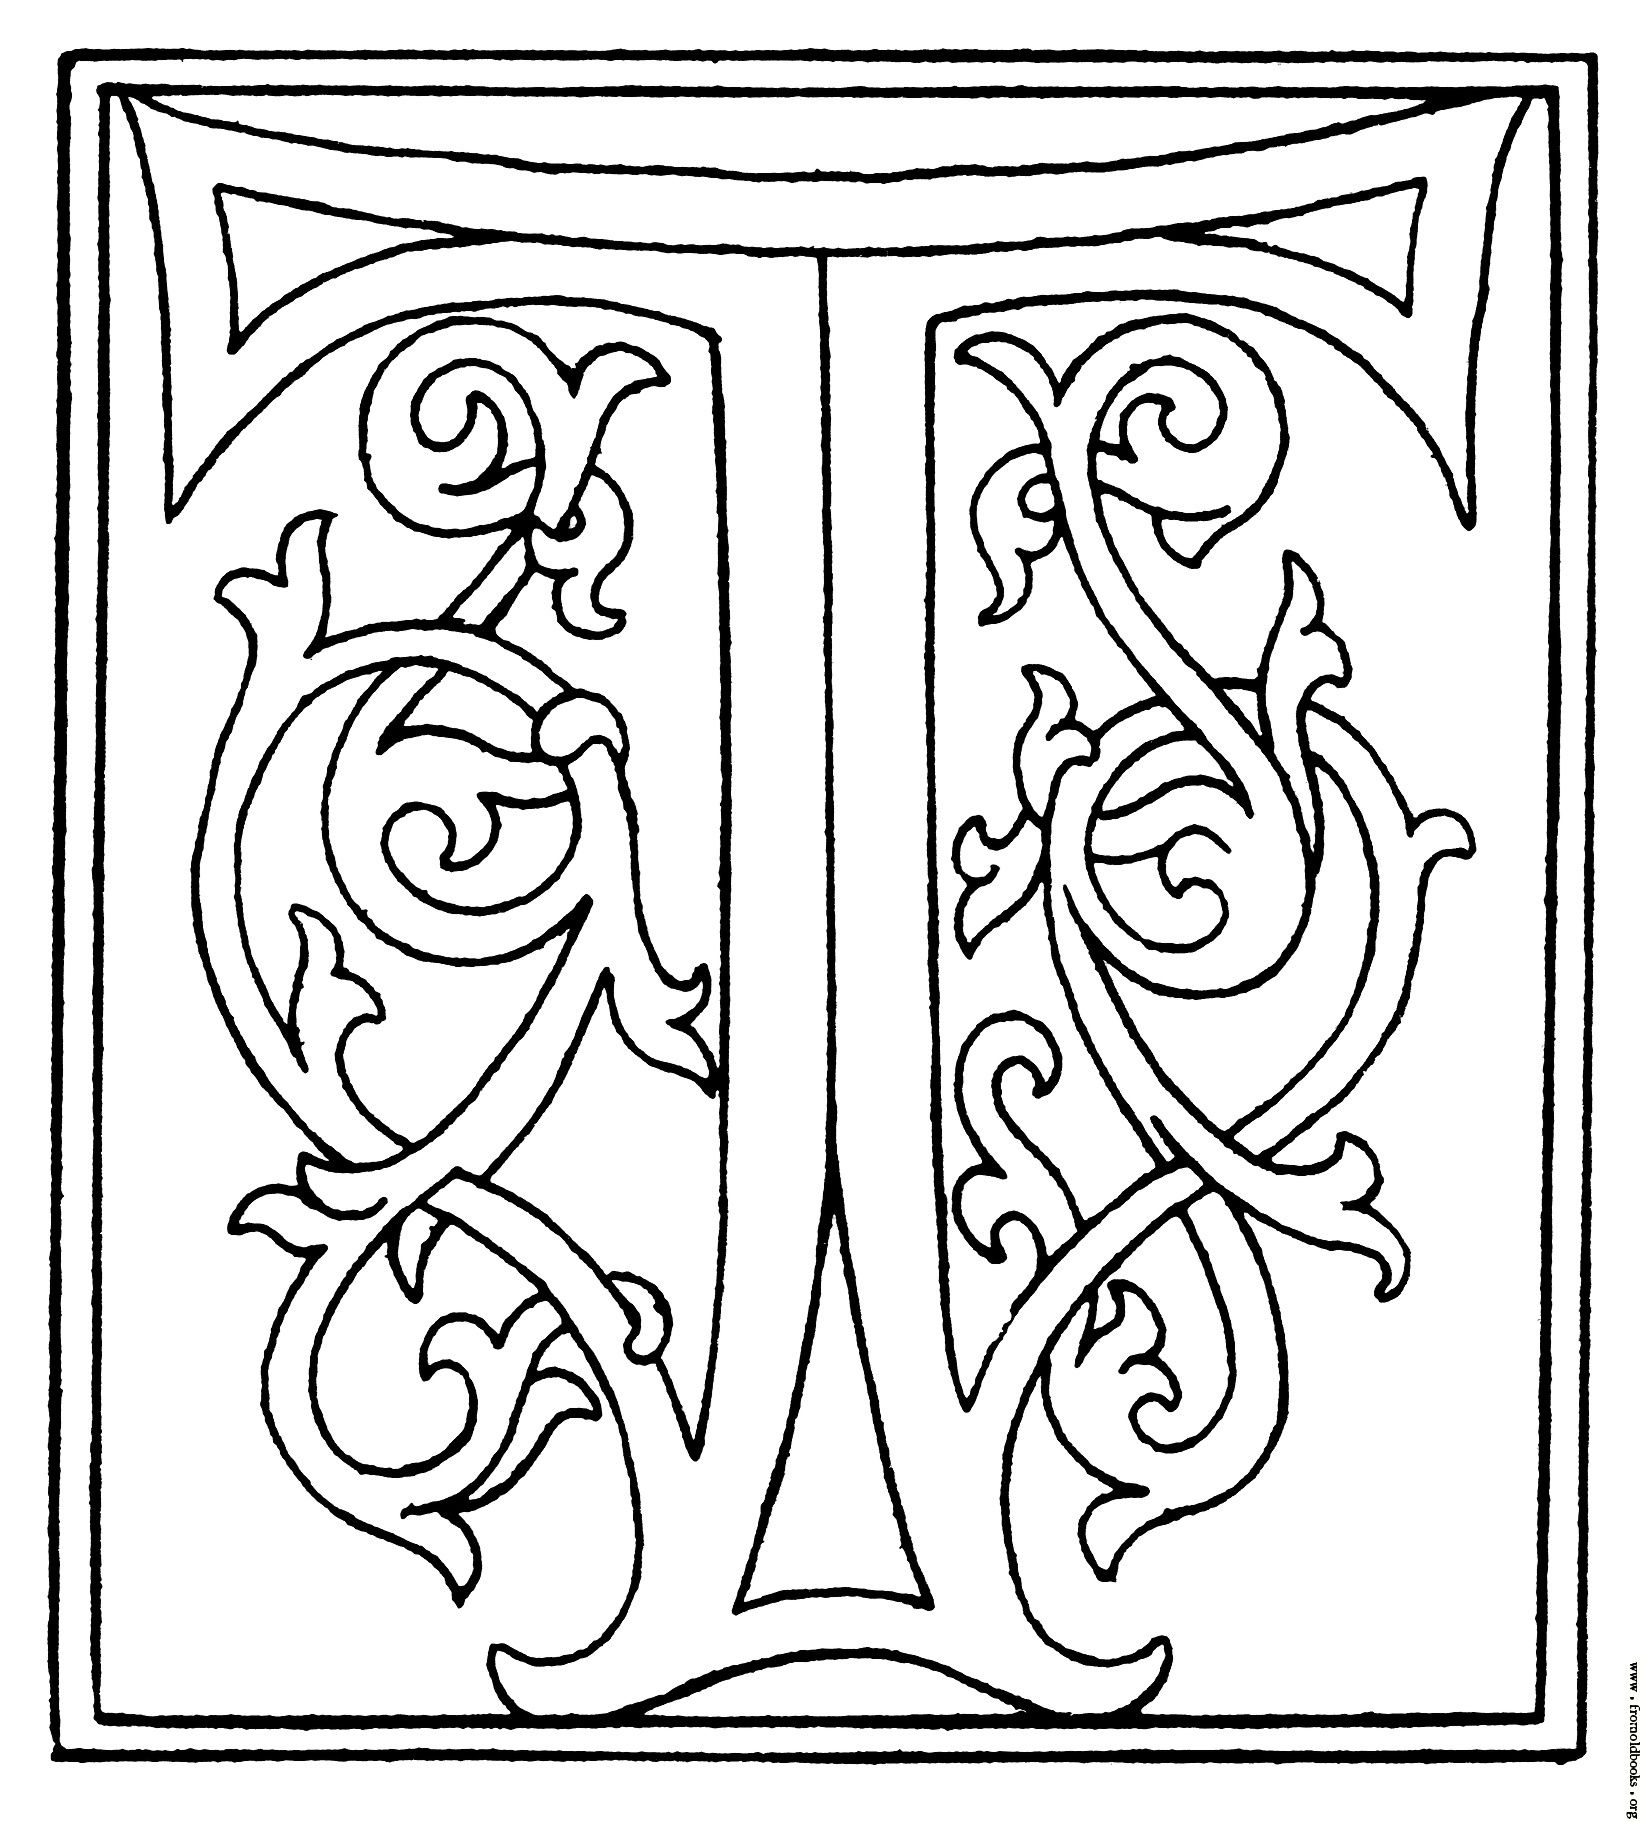 alphabet graphics clipart initial letter t from late 15th century printed book image